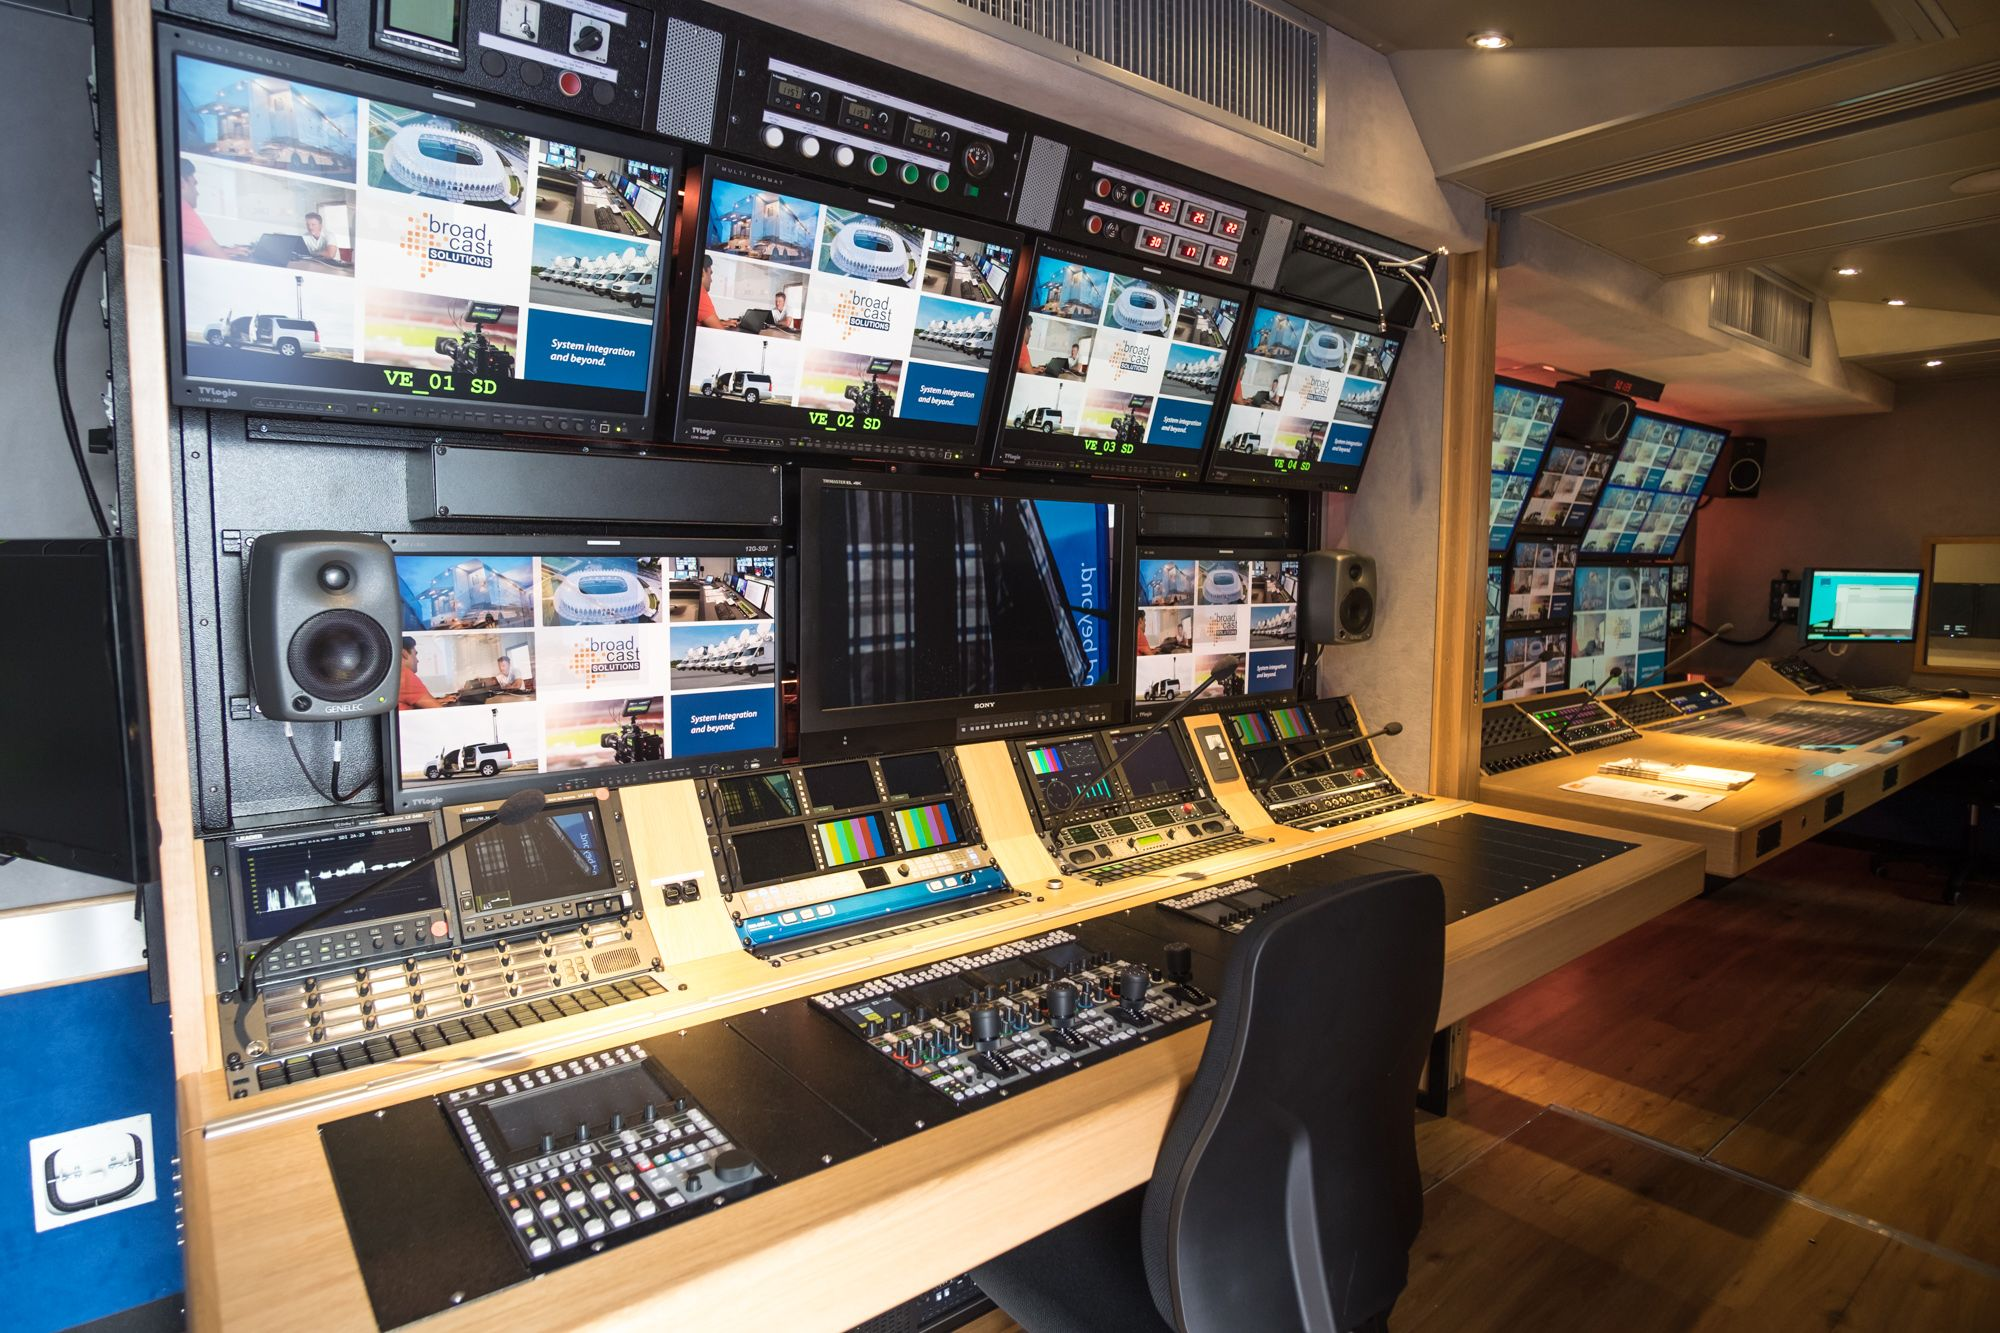 South Korean Broadcaster SBS commissioned the world's first 12G-SDI UHD OB Van by Broadcast Solutions. #RIEDEL products, such as the latest generation Artist Intercom incl. the SmartPanel, MediorNet as a flexible stagebox solution and RiFace as wireless talkback, are integrated into the new truck.